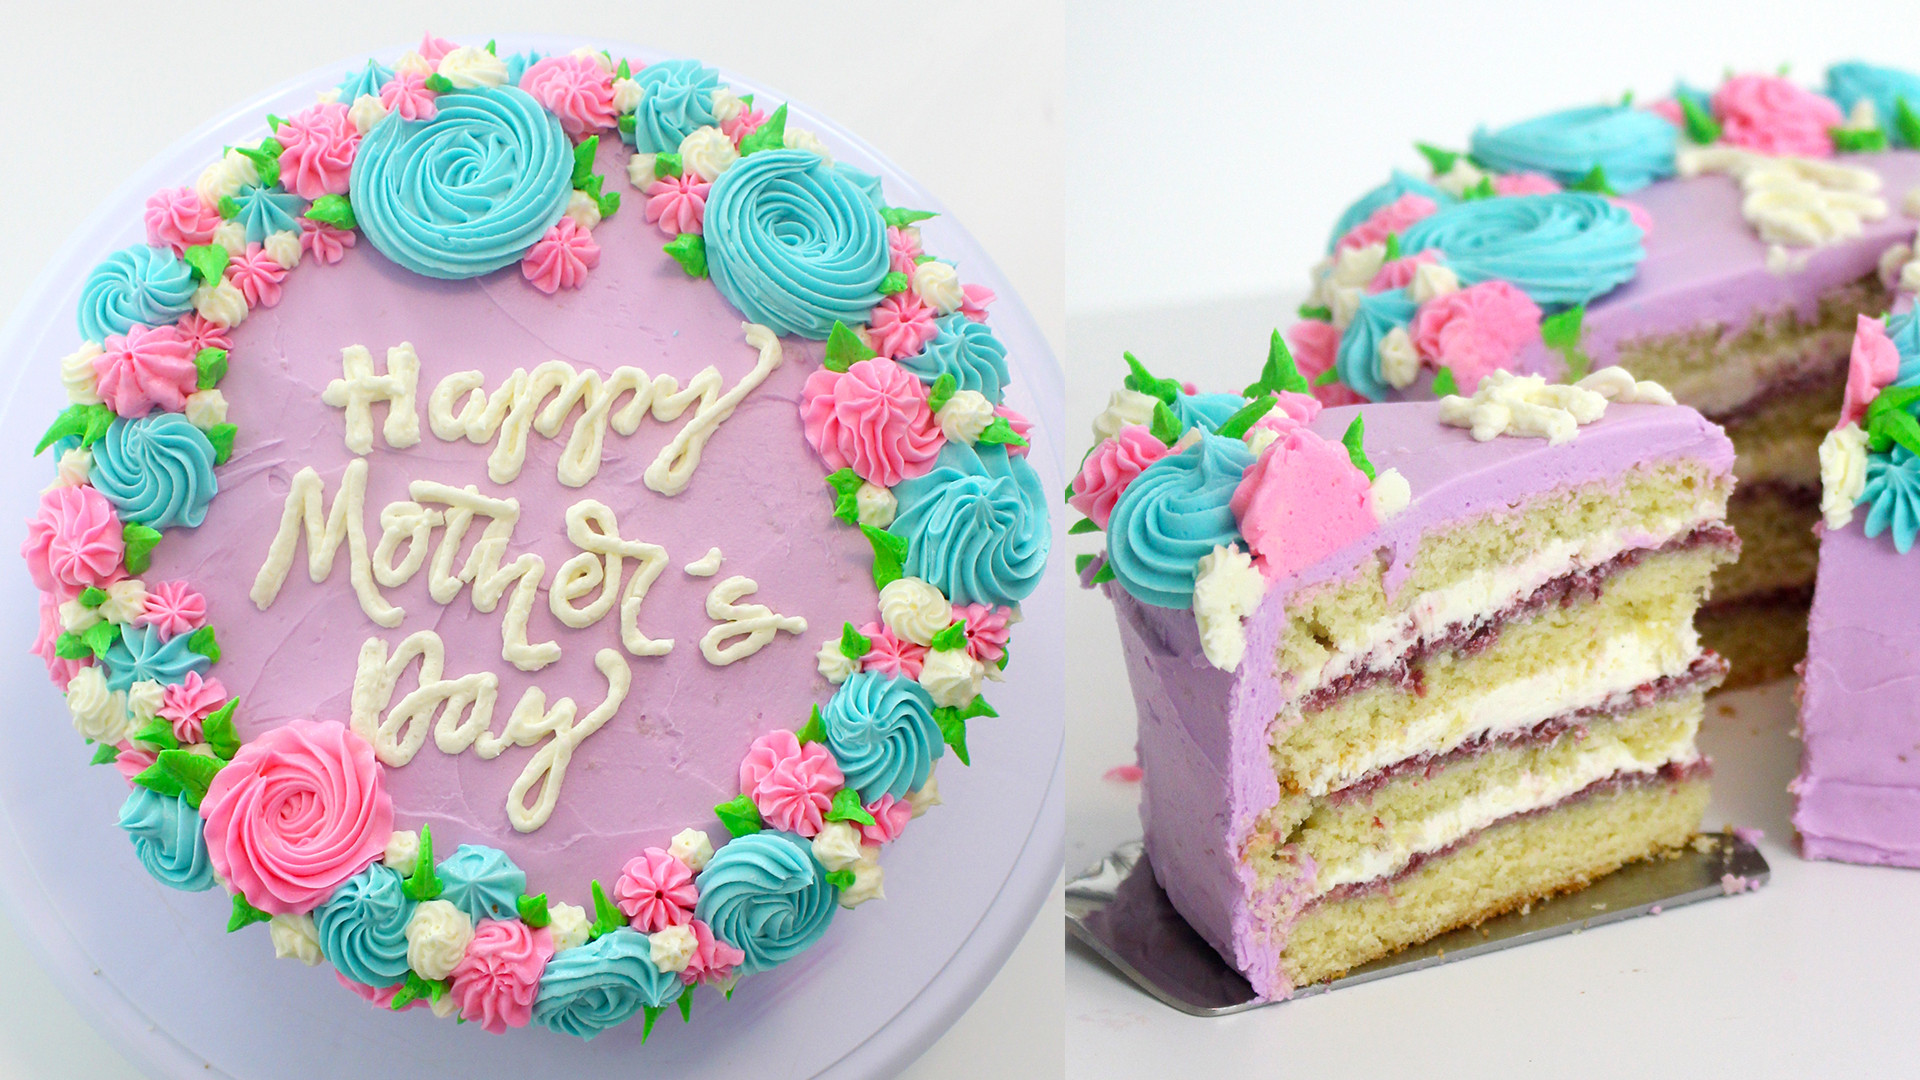 Mothers Day Cake Recipes  pankobunny How to make a Mother's Day Cake Cake Message